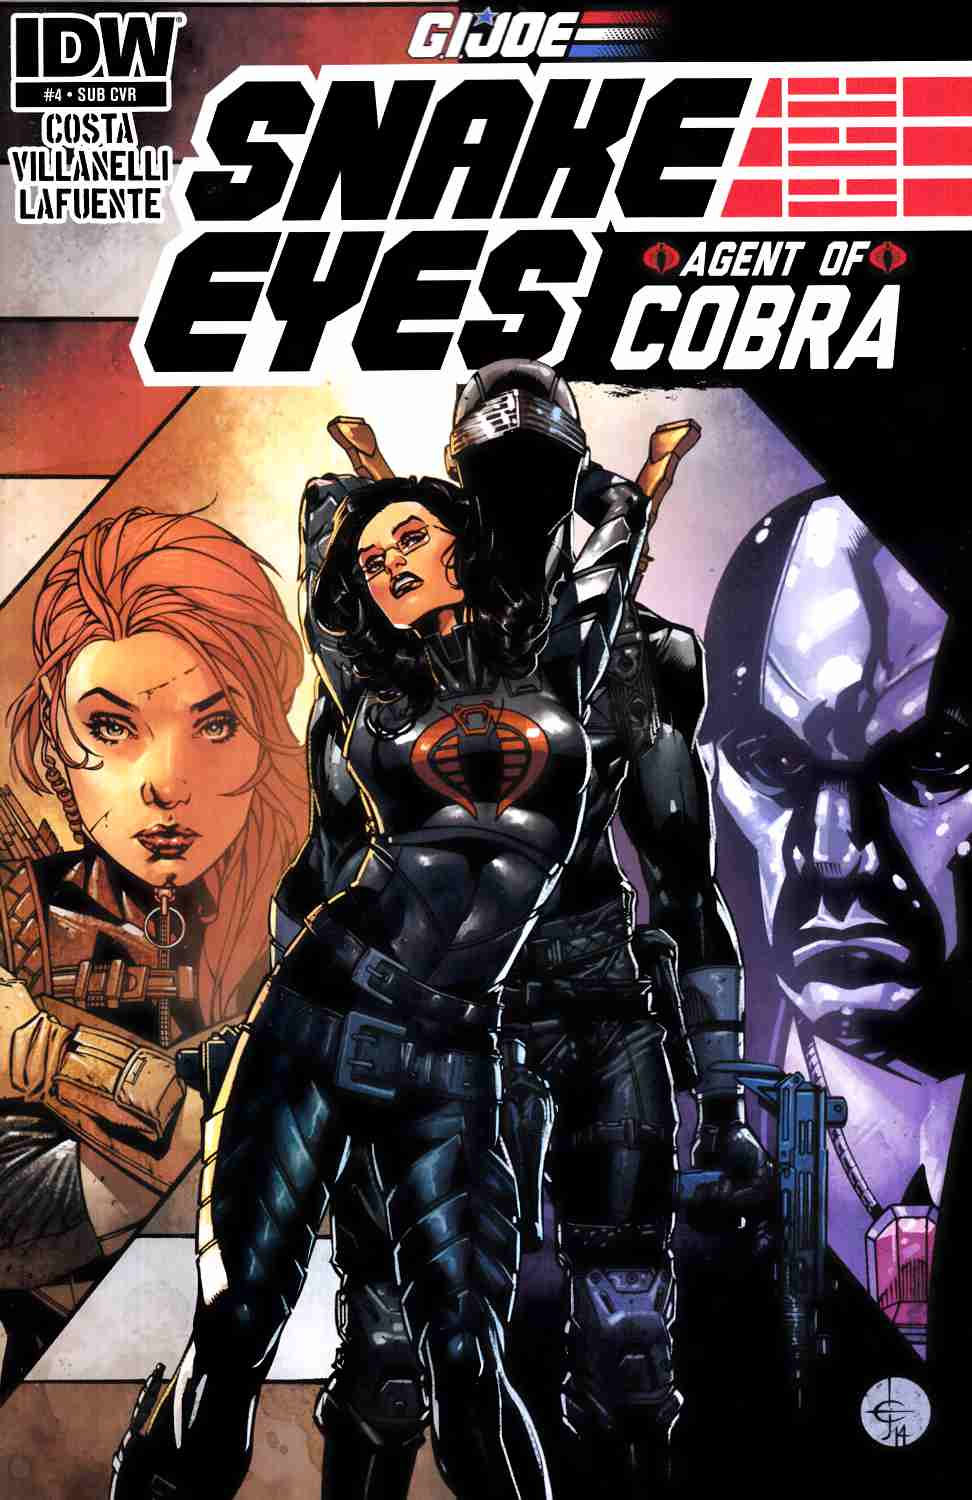 Gi Joe Snake Eyes Agent of Cobra #4 Subscription Cover [IDW Comic]